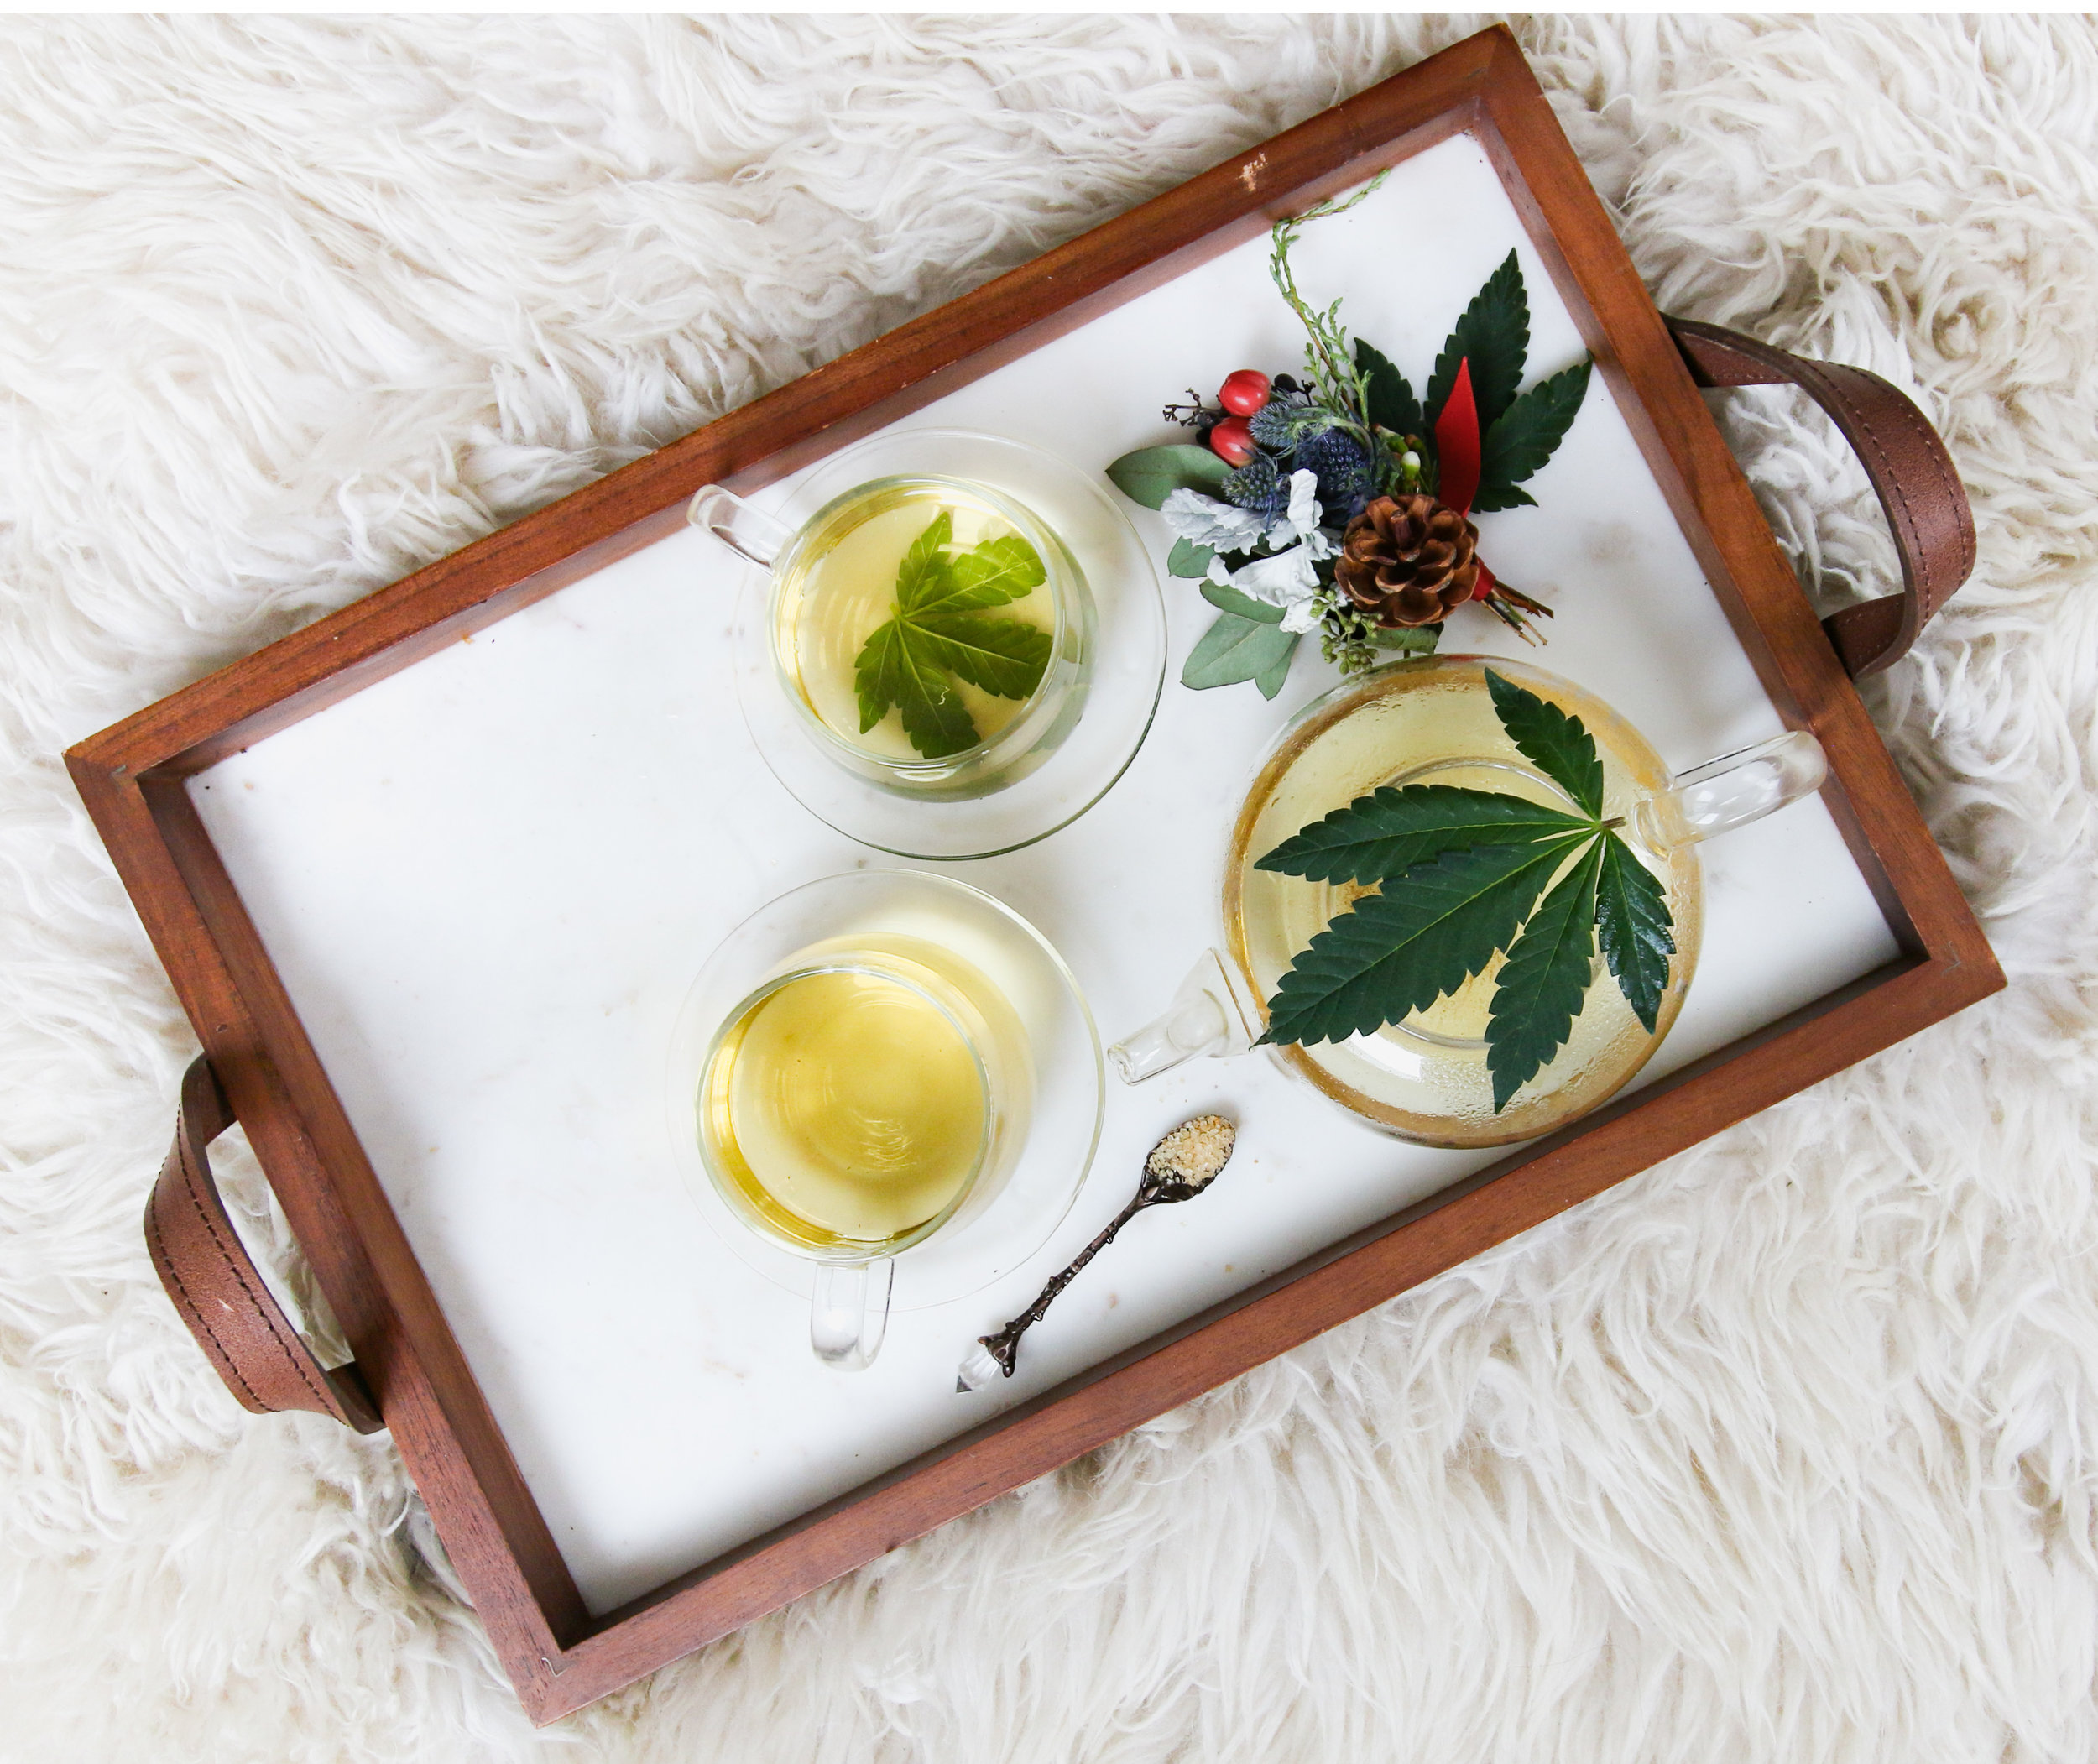 How I quit drinking after trying for years. How CBD oil, along with four other tricks, helped sobriety to finally stick. I hope this article motivates you to take some steps toward sobriety or changing your drinking habits if you feel called to do so. #cbdoil #cbd #quitdrinking #soberlife www.musicandmunchiesblog.com